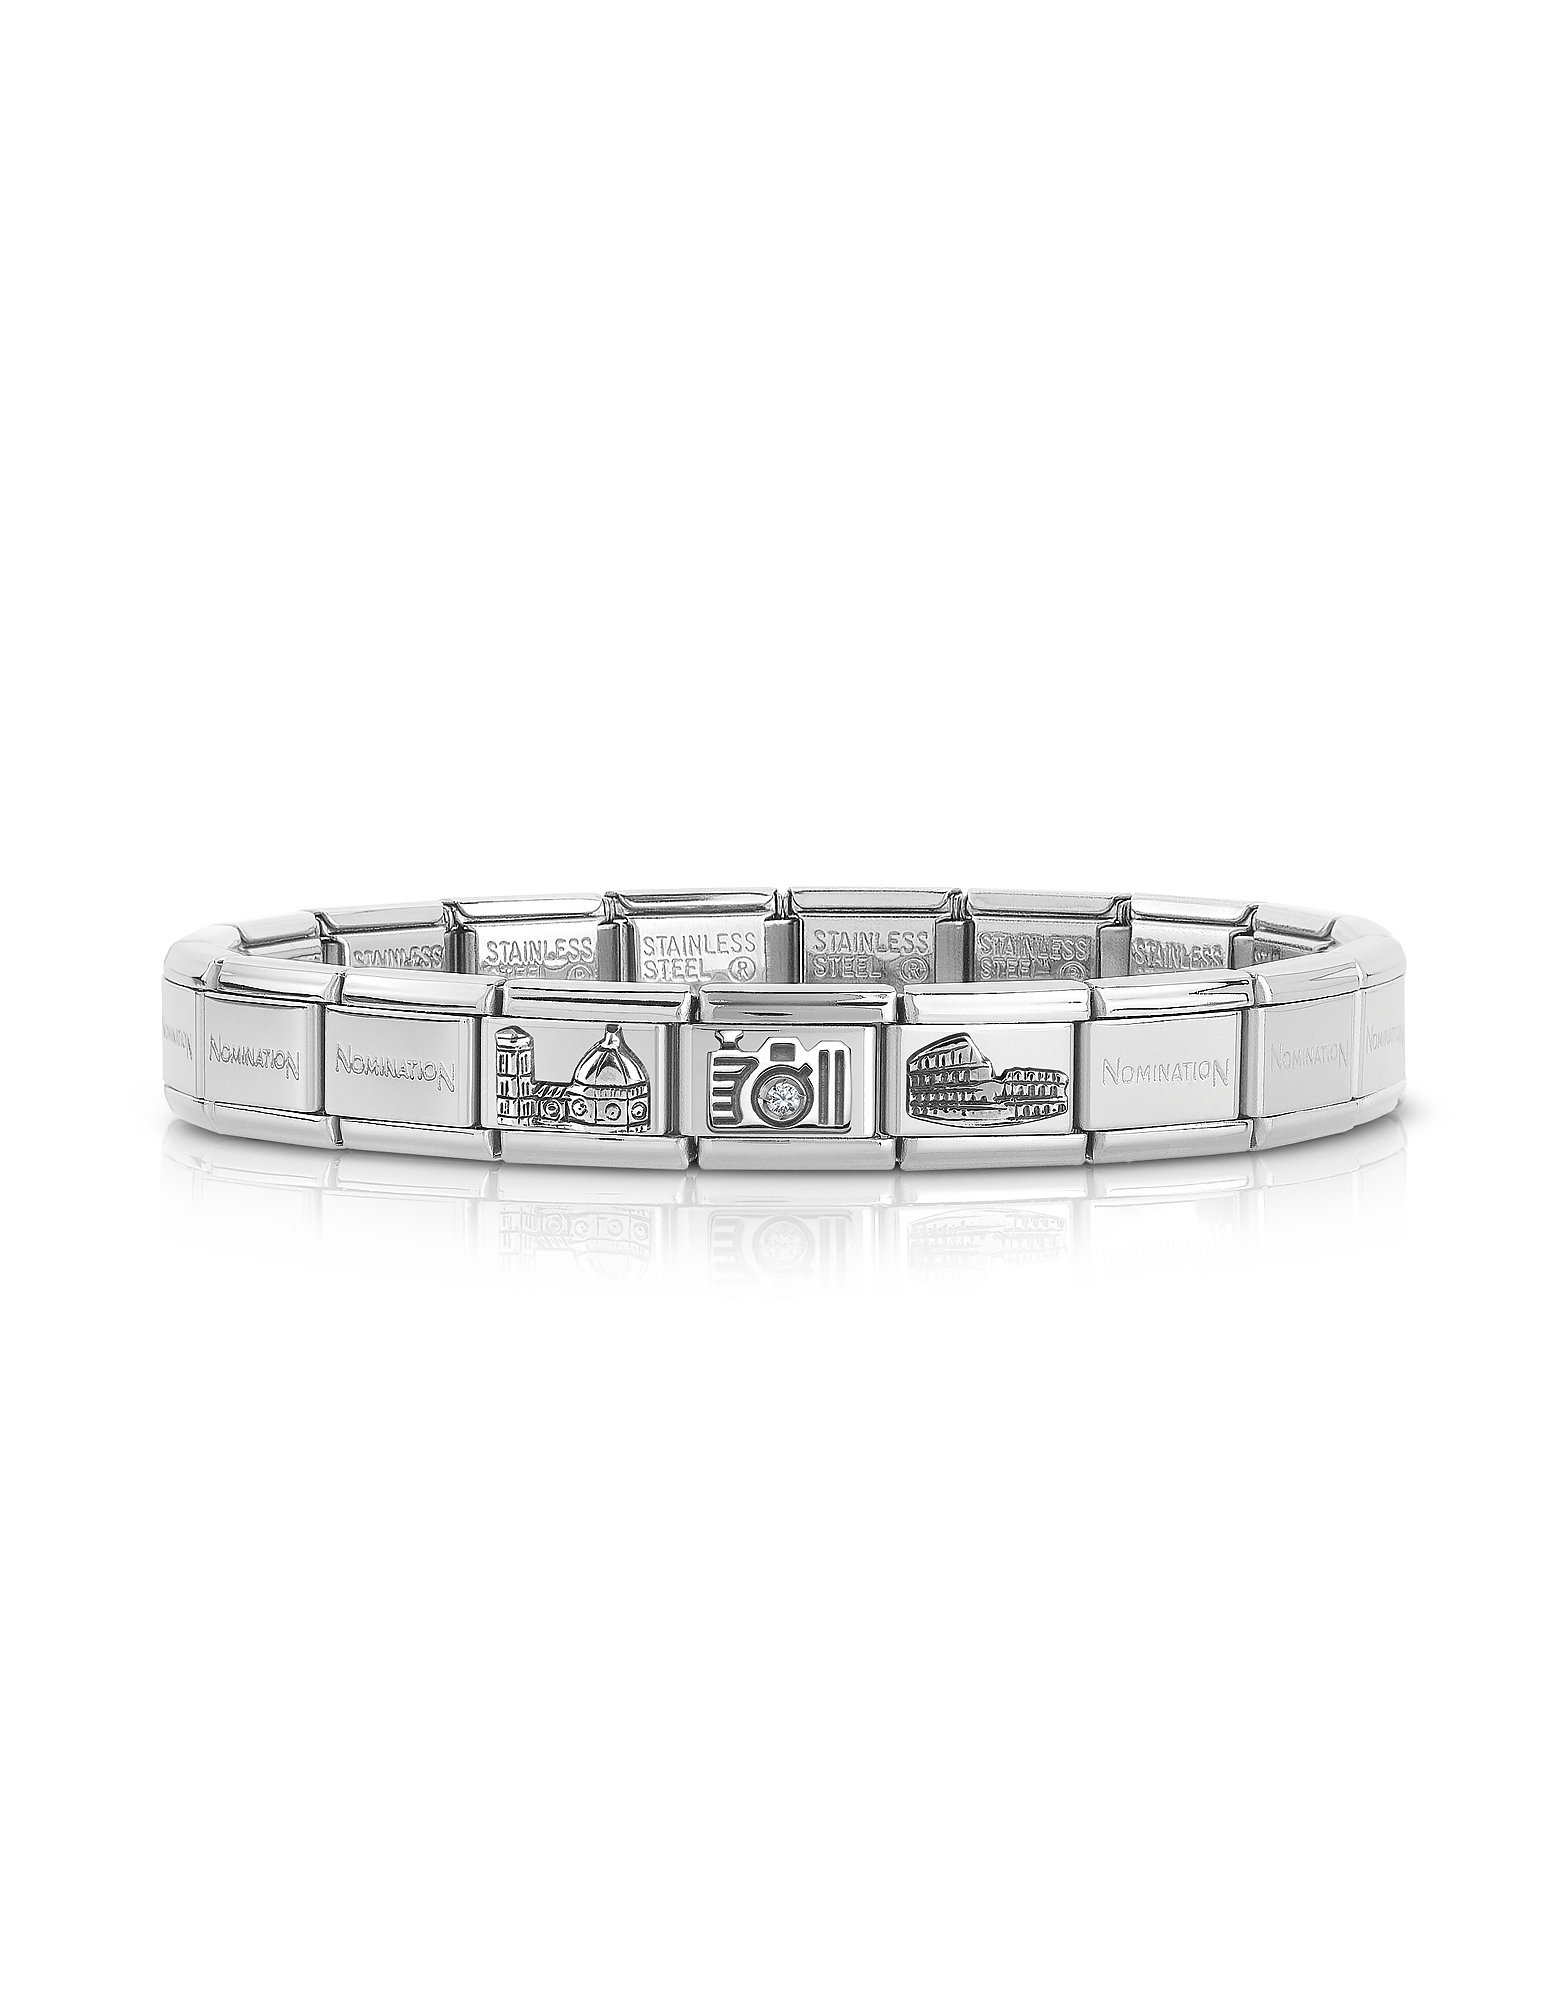 Nomination Designer Bracelets, Classic Italia Stearling Silver and Stainless Steel Bracelet w/Cubic